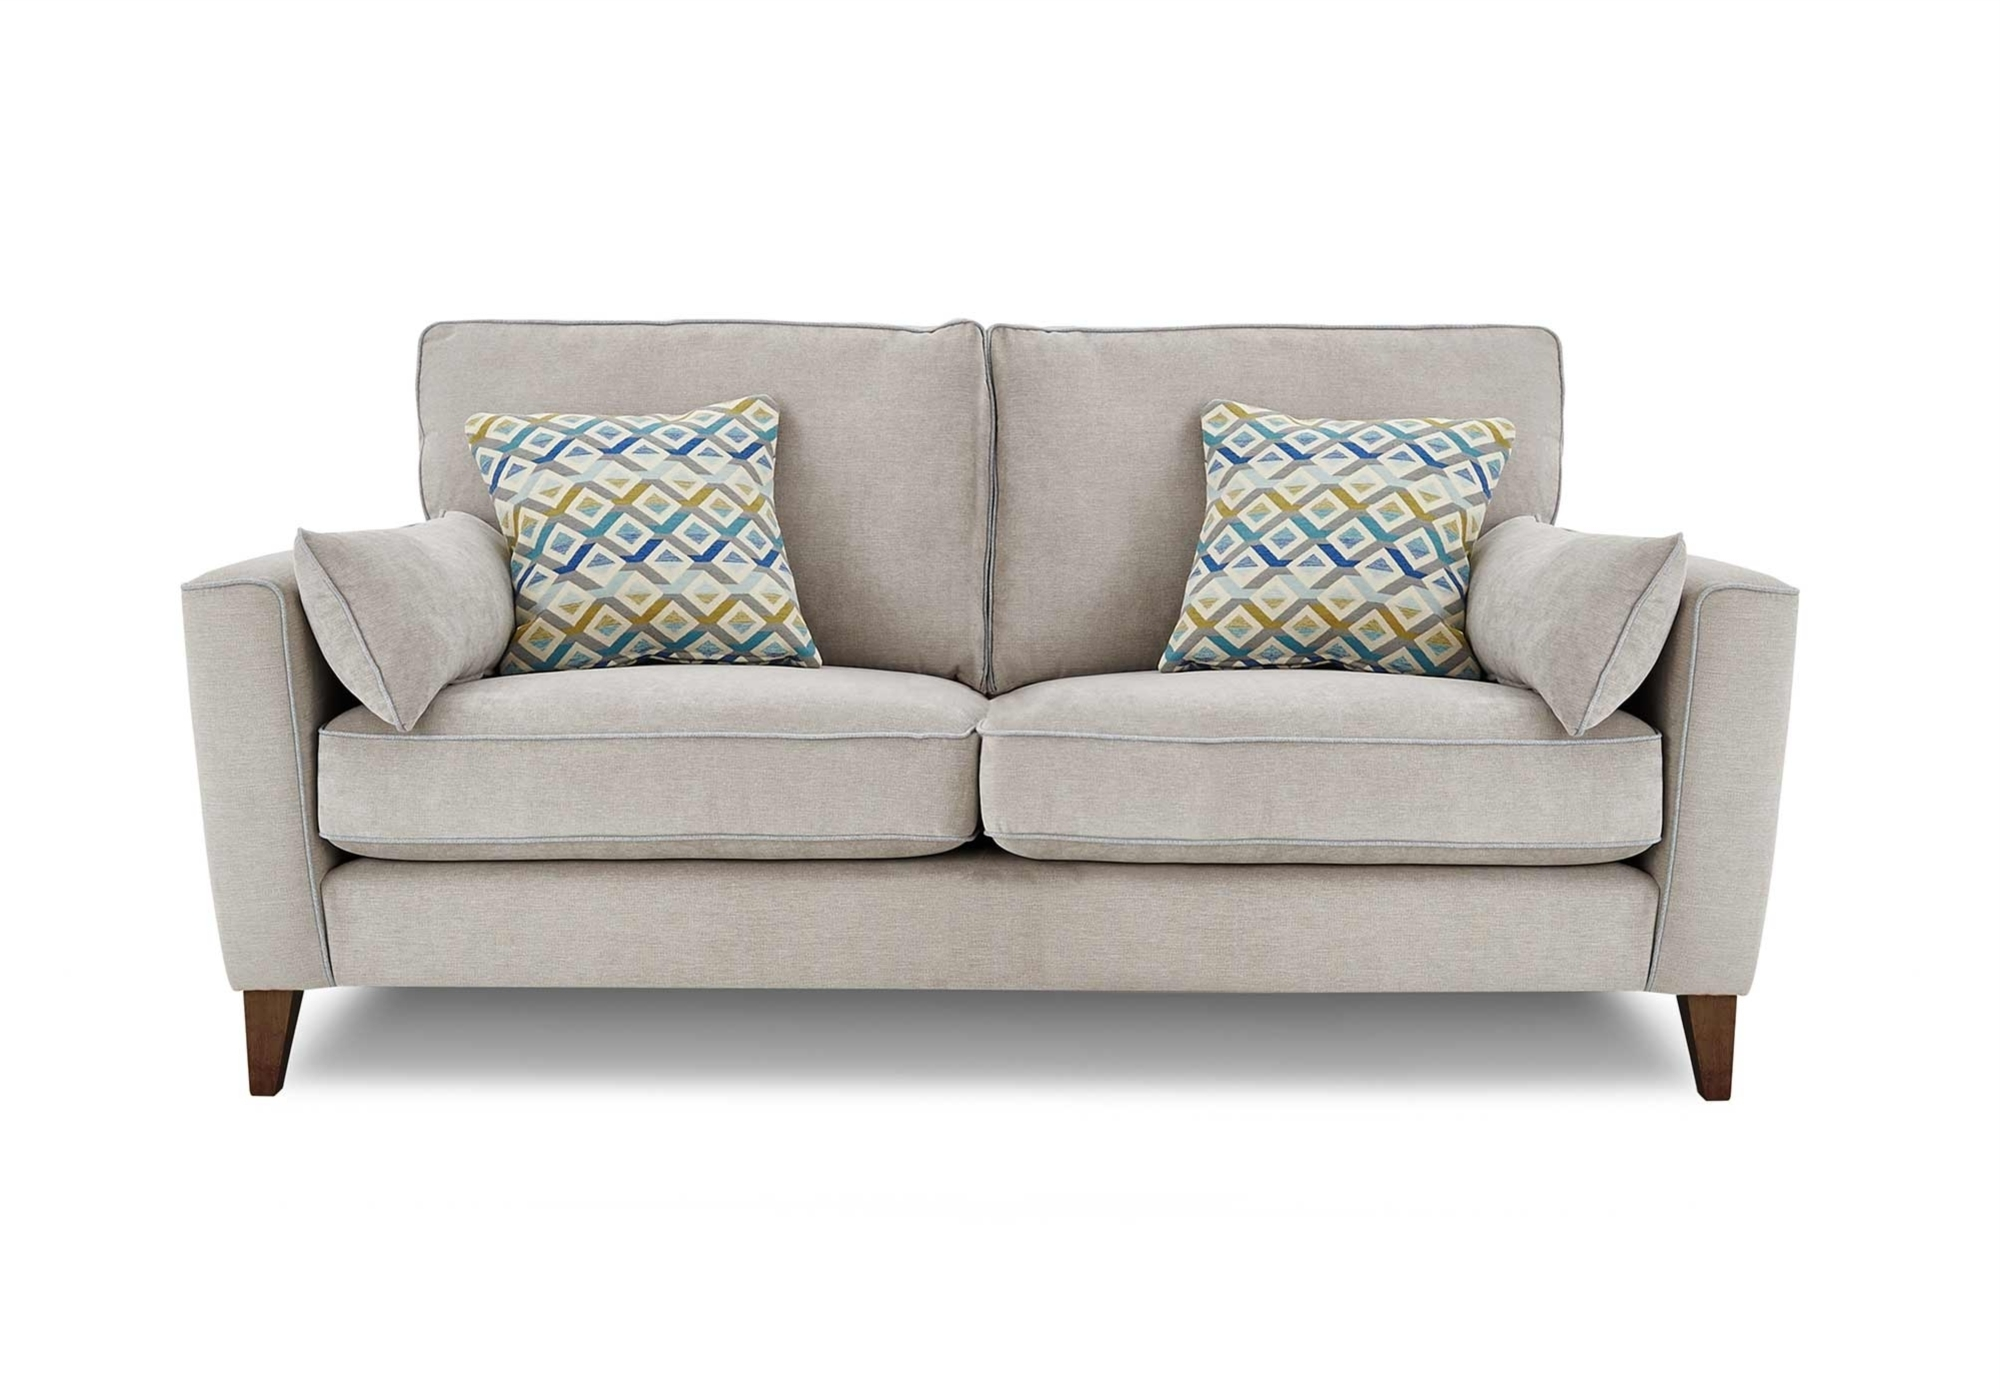 Two Seater Sofas For Well Liked Two Seater Sofa Silfre Inside 2 Seat Sofa On Sale With Regard To (View 11 of 20)